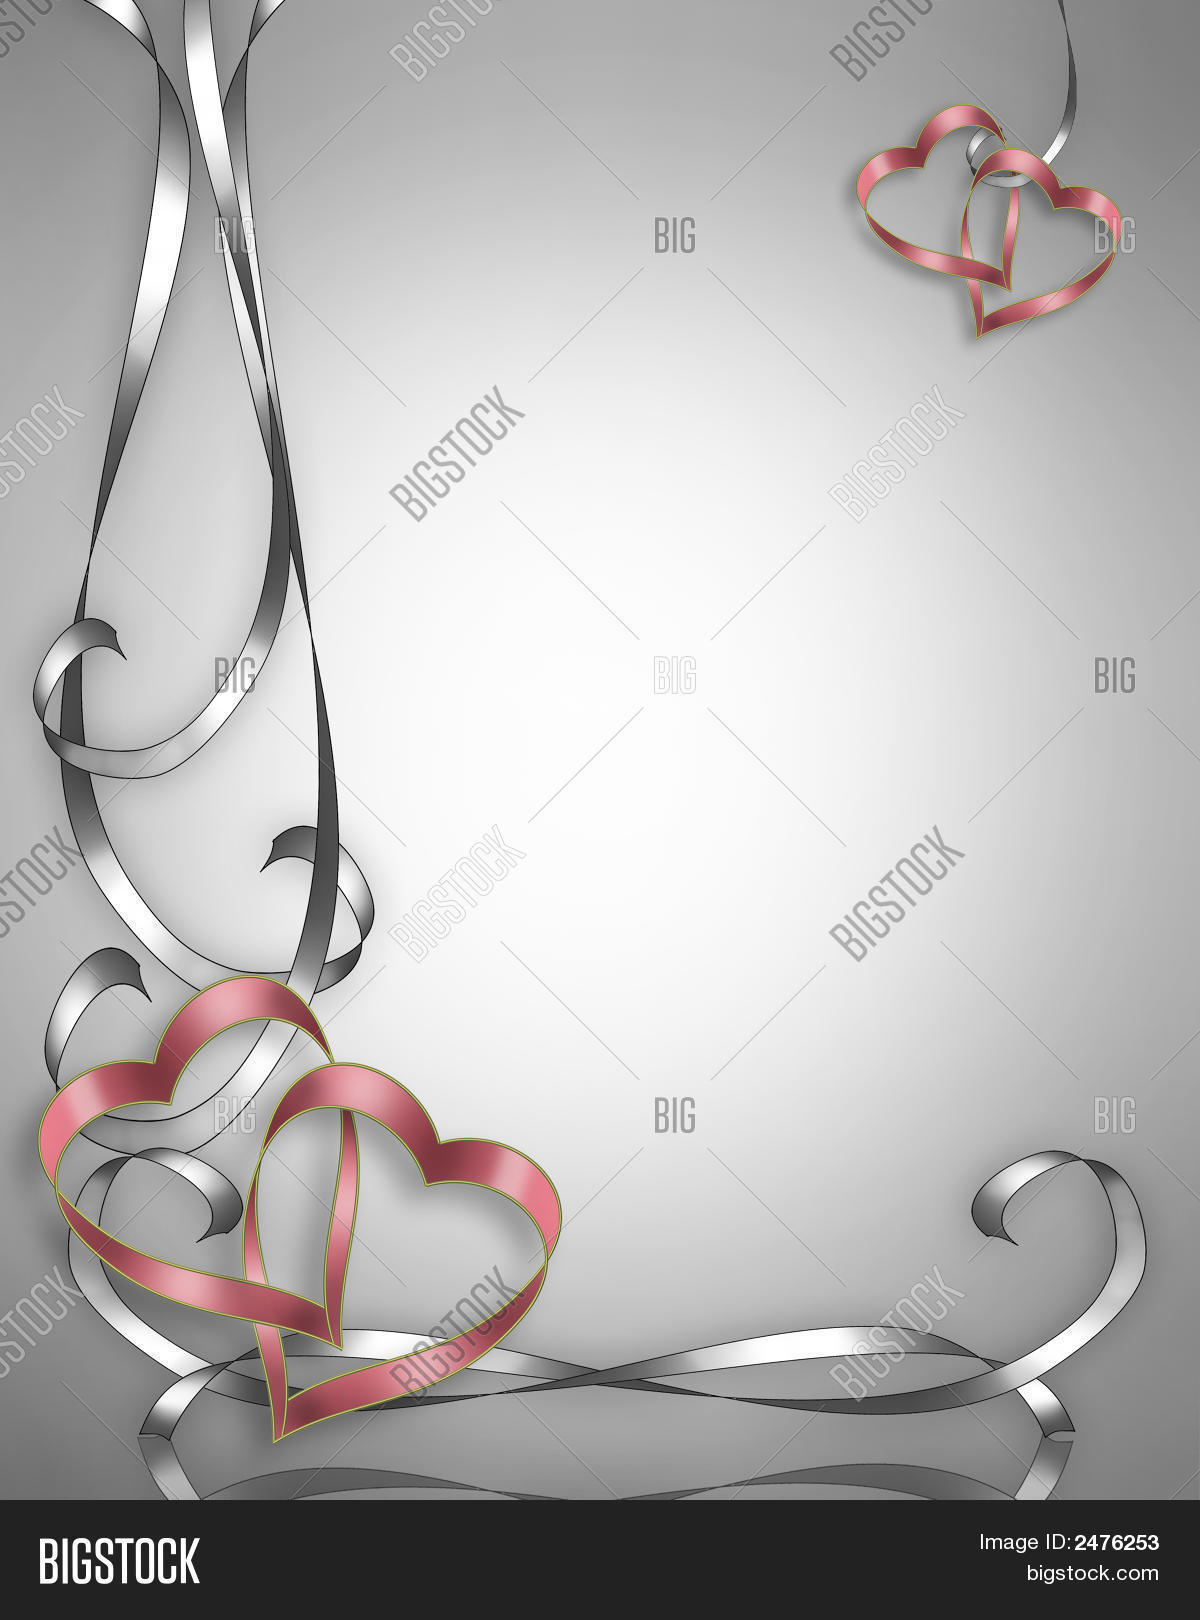 Wedding Invitation Valentine Image Photo Bigstock